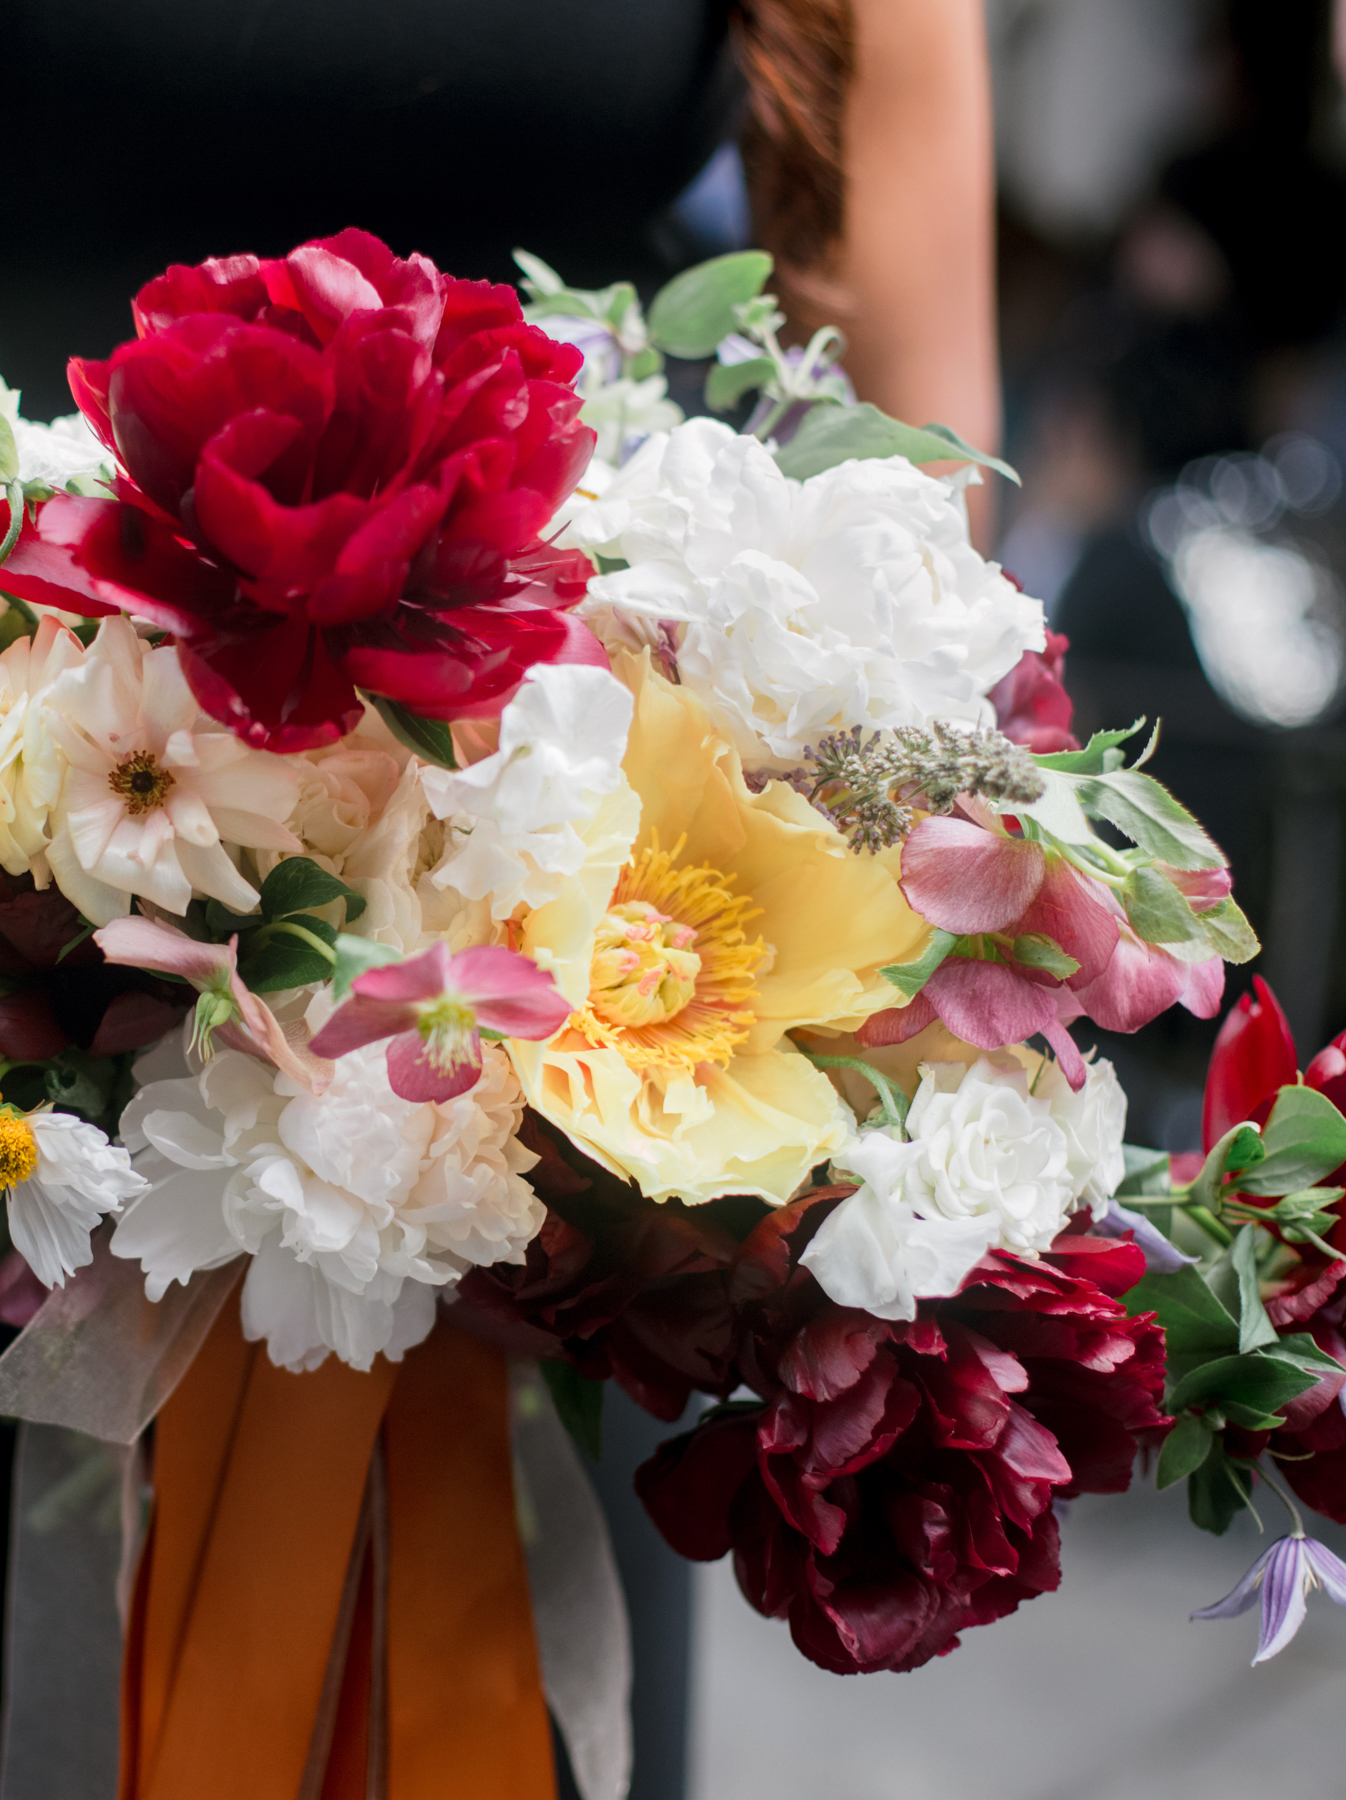 moody-new-orleans-session-bouquet.jpg